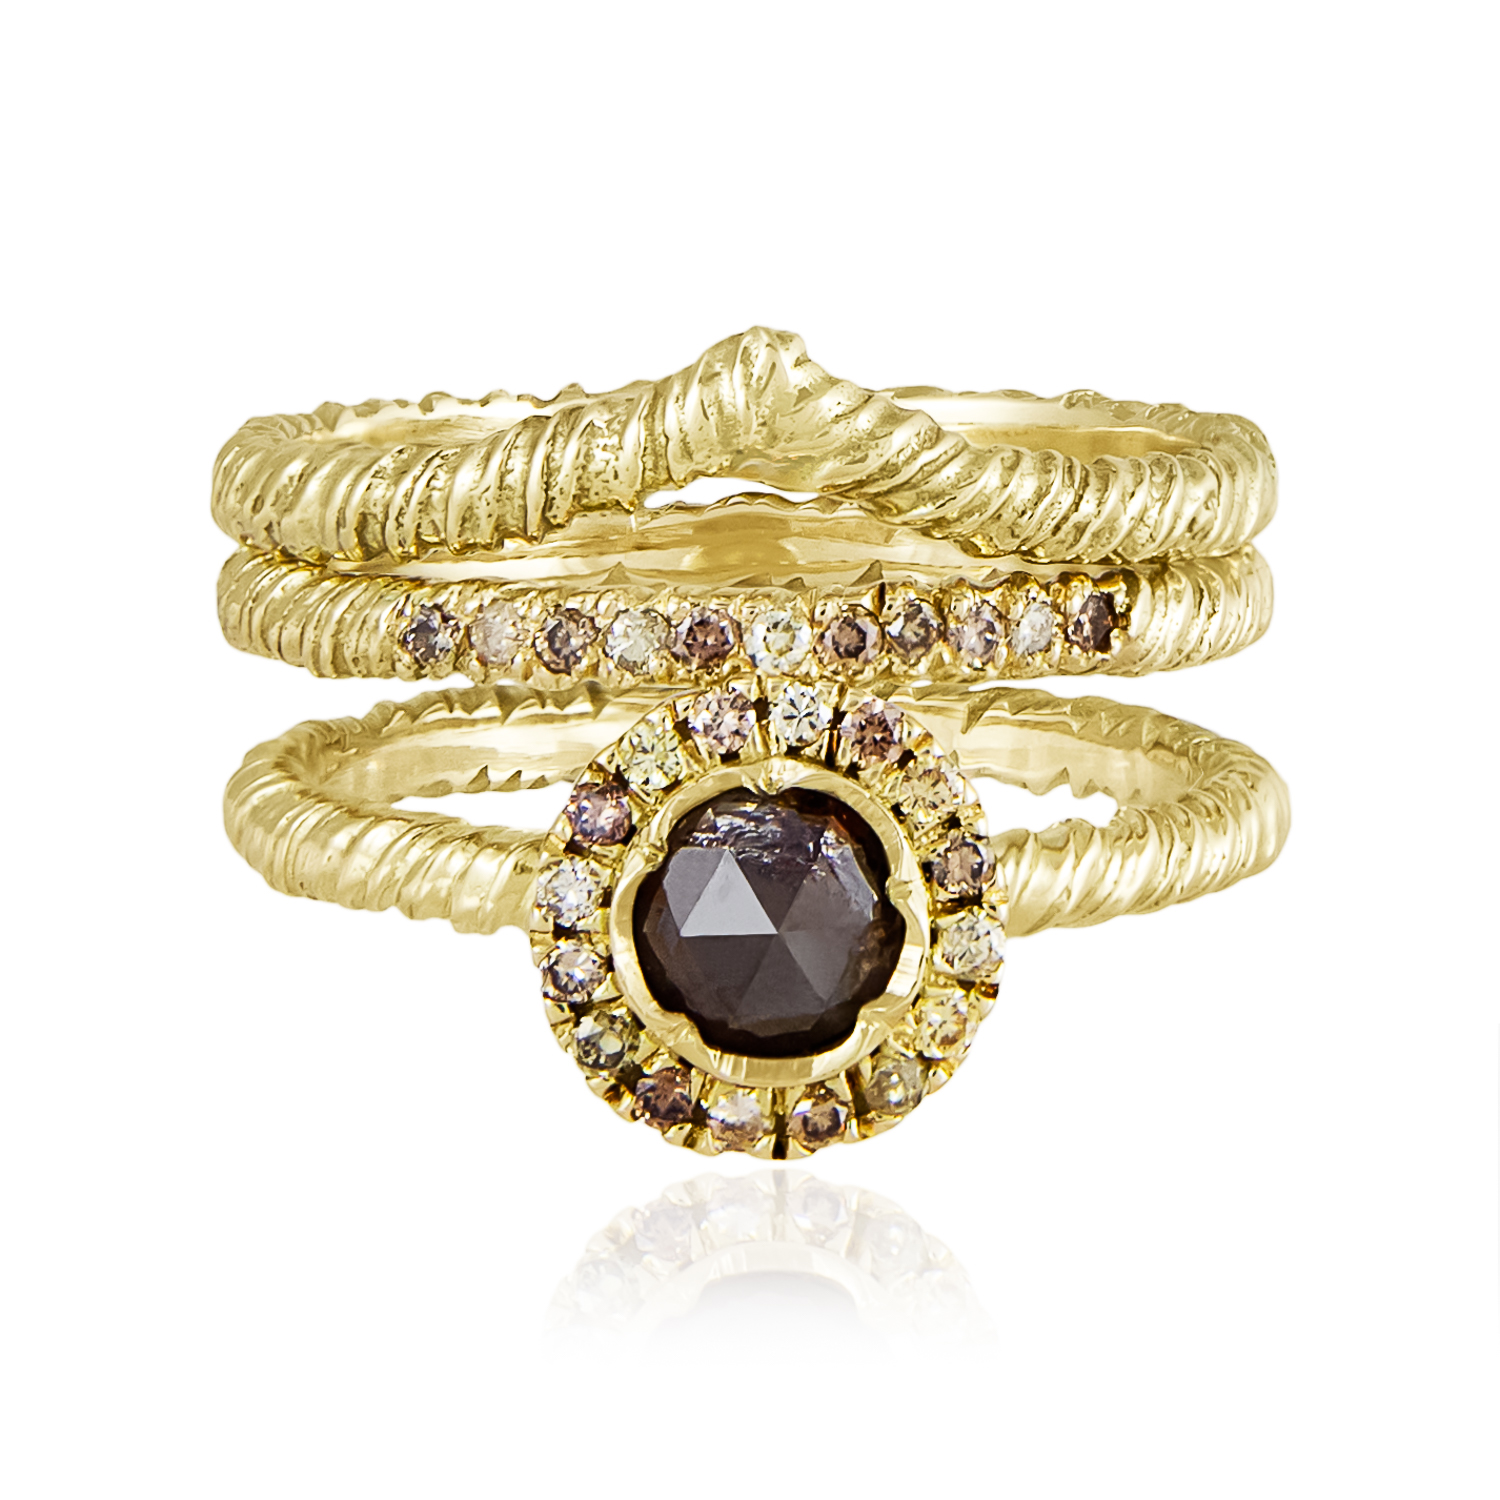 Natalie Perry Jewellery releases Entwined bridal collection